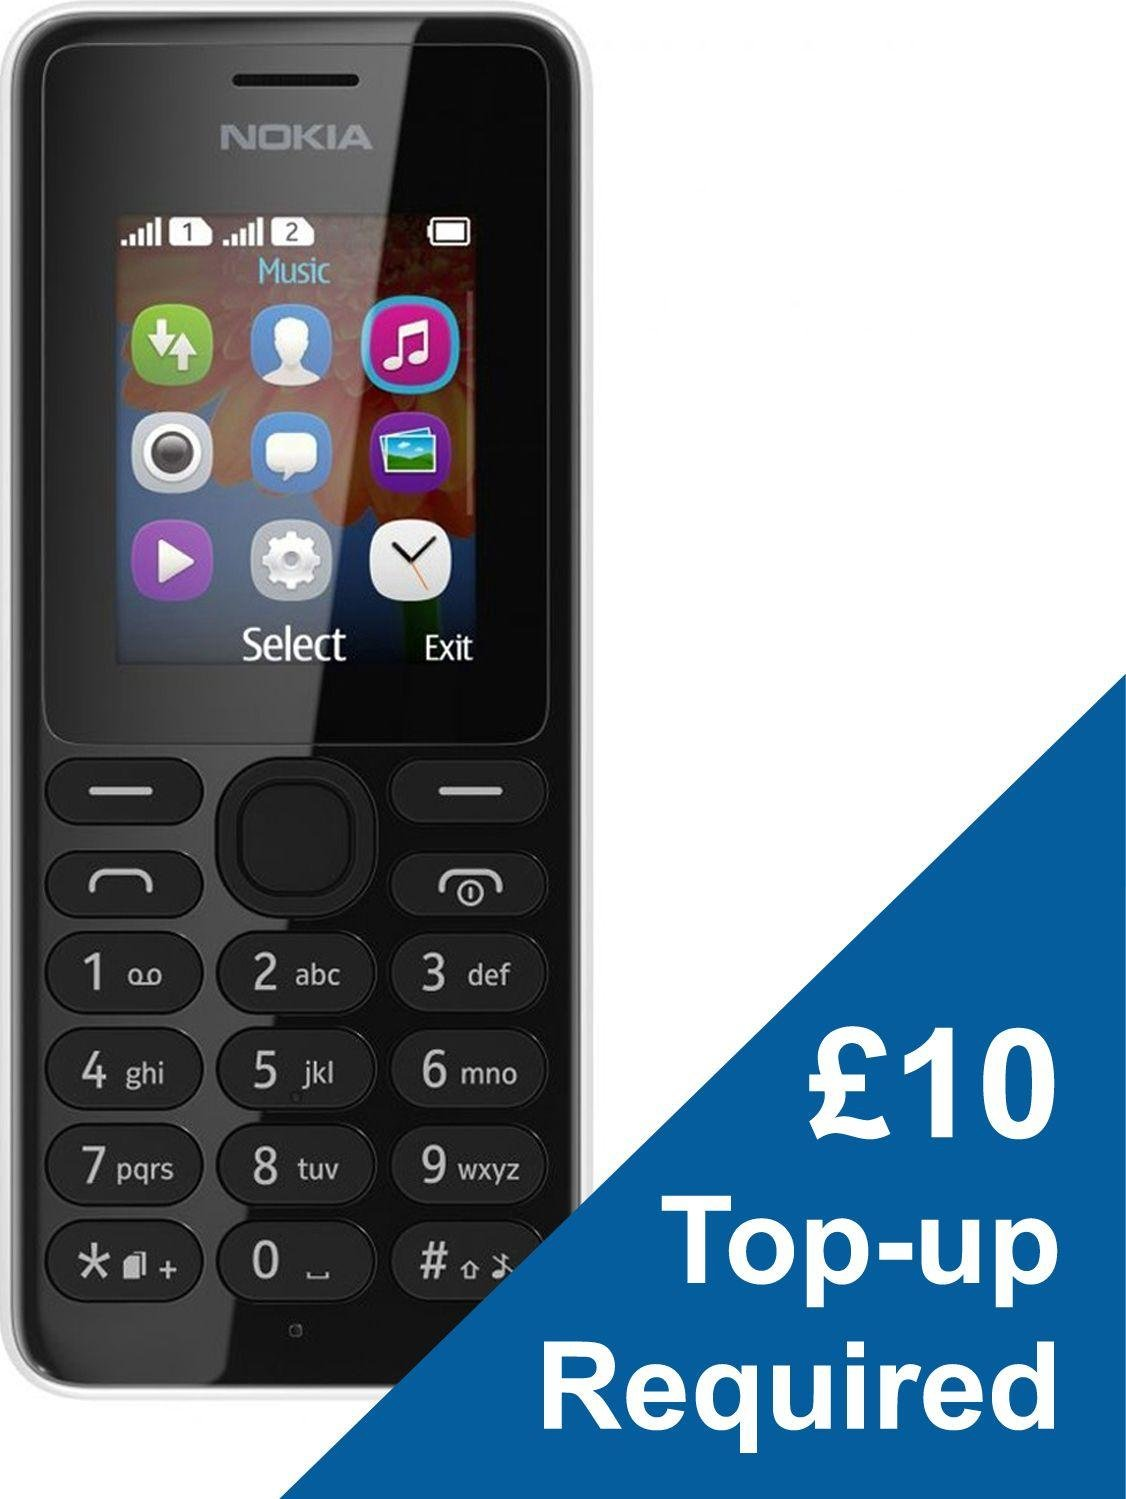 New Windows Mobile 10 handset on sale at Argos - Coolsmartphone